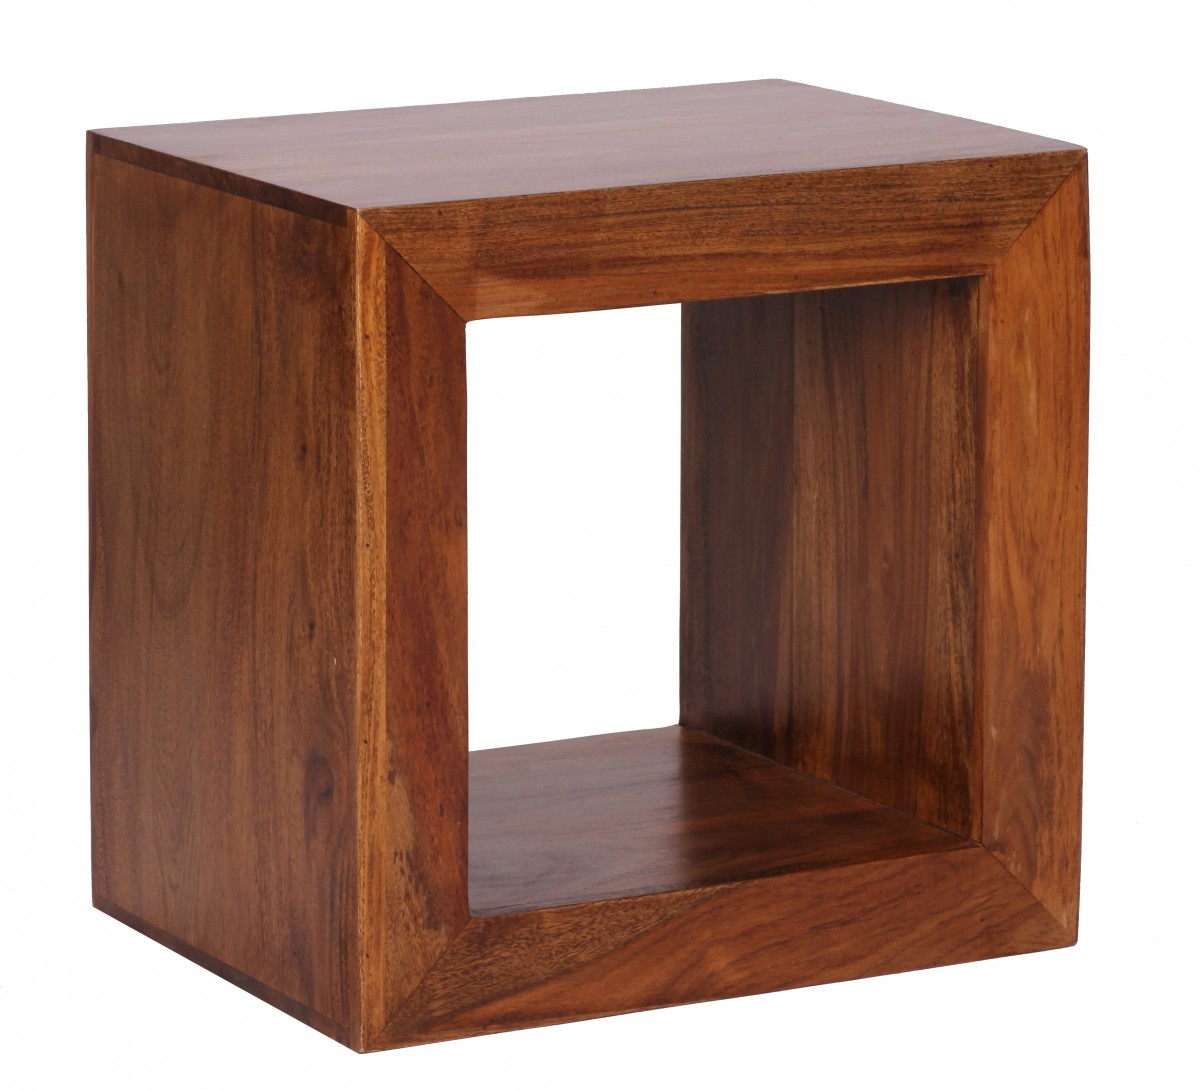 wohnling standregal massivholz sheesham 44cm hoch cube regal design holzregal naturprodukt. Black Bedroom Furniture Sets. Home Design Ideas